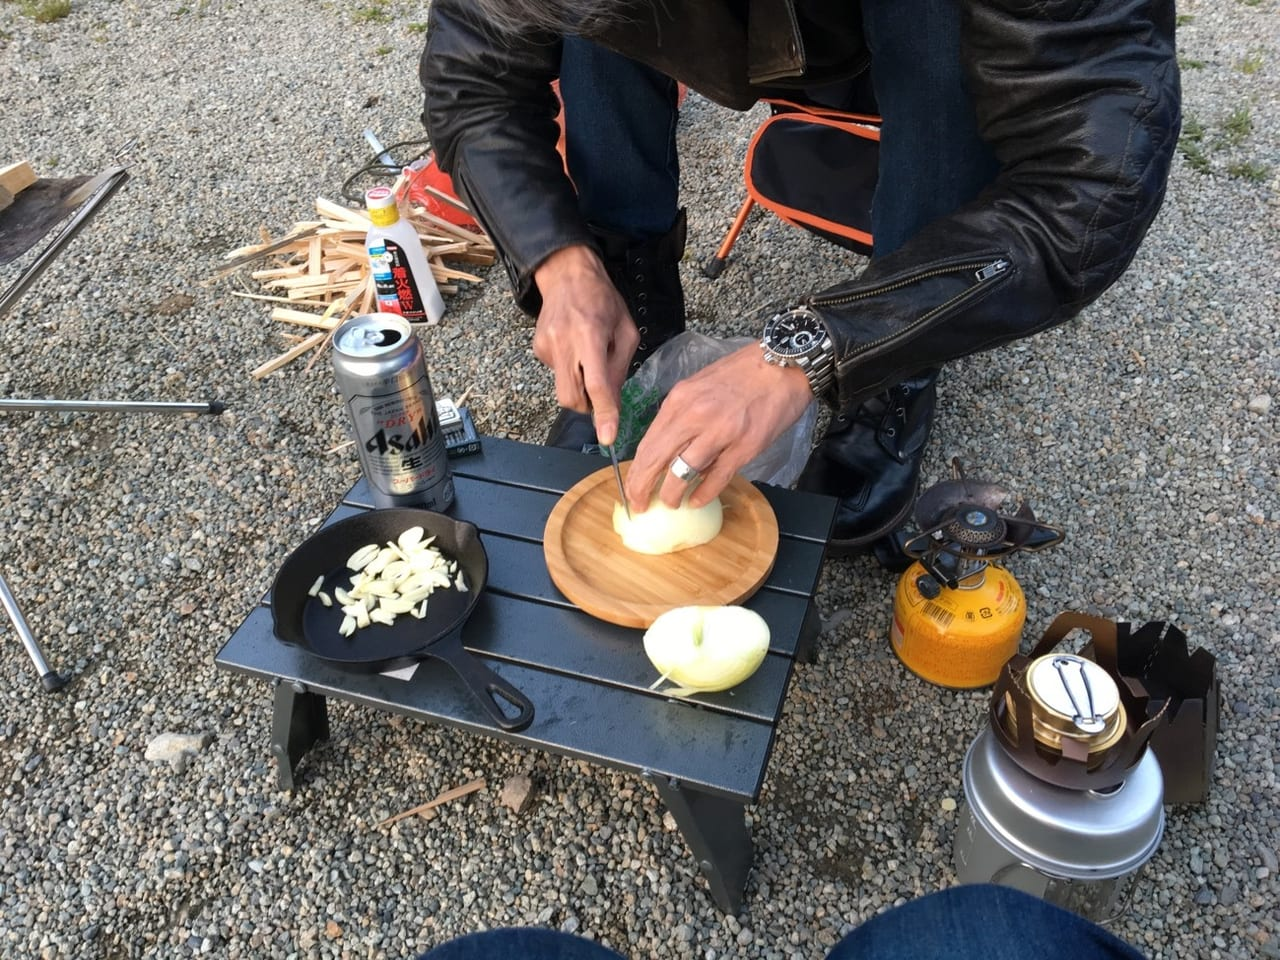 /1247-outdoor-cuisine-at-shiobara-green-village